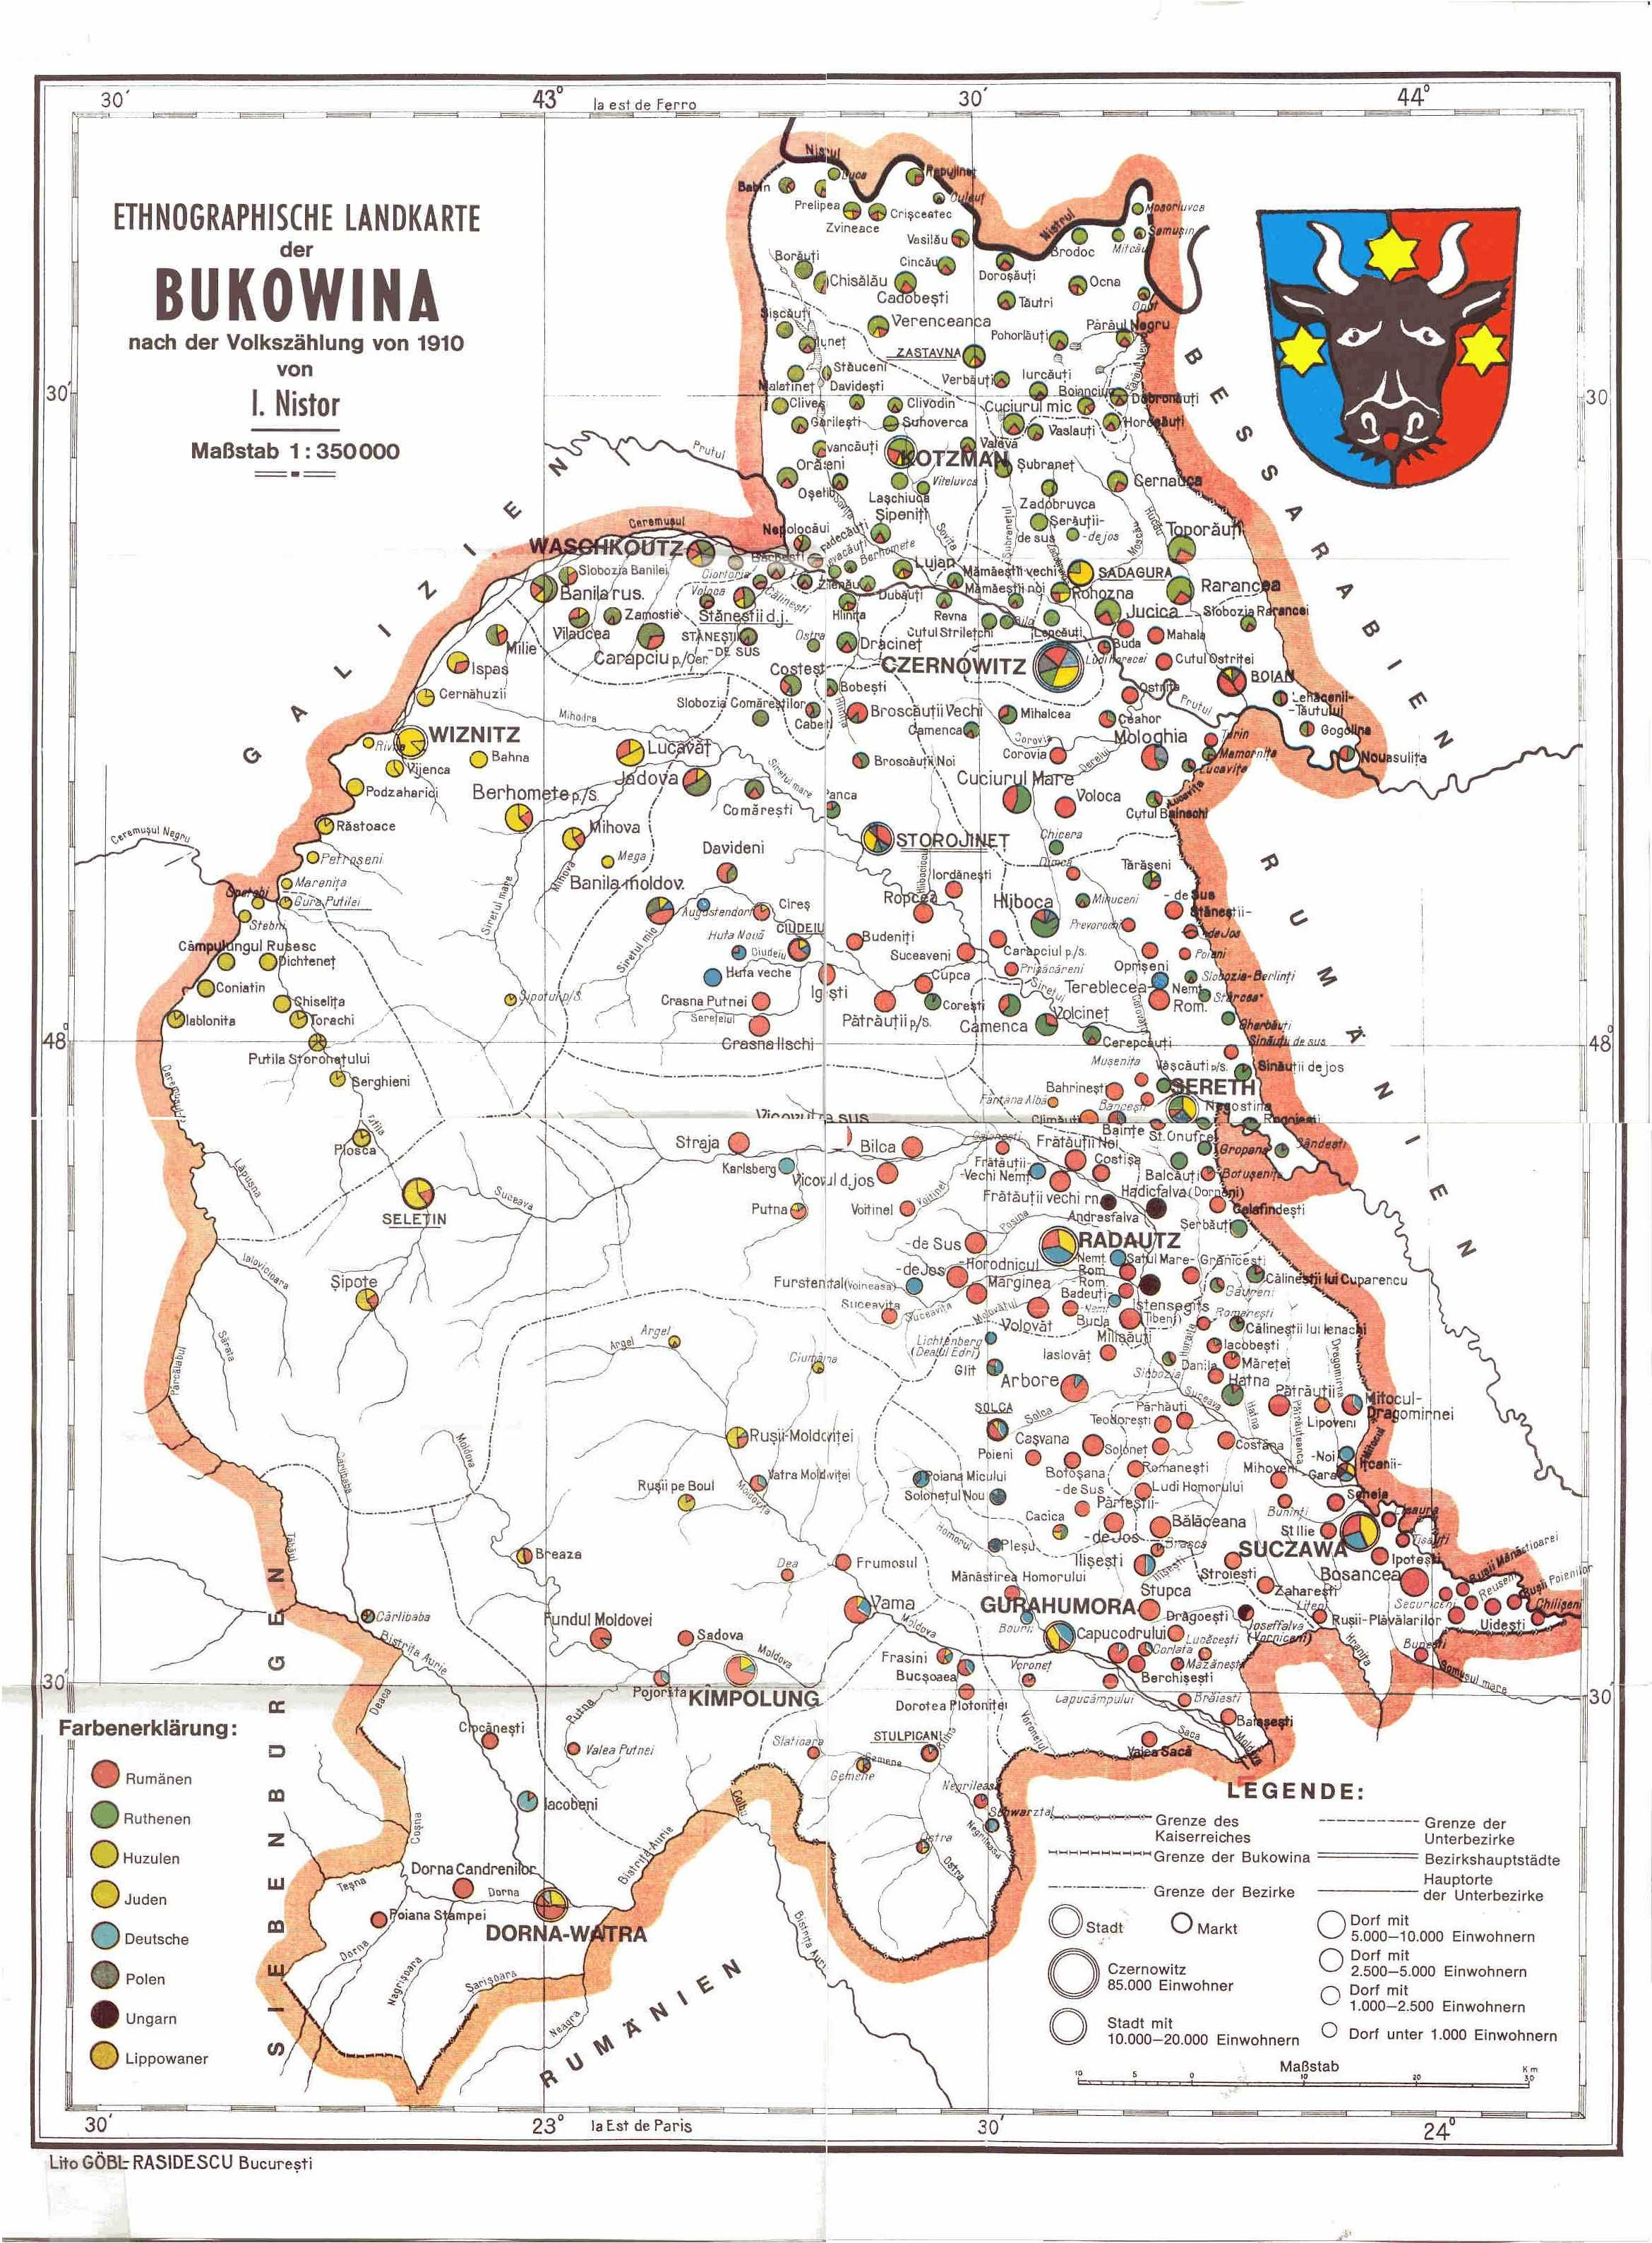 Map of Bukovina 2340 x 3177 dot version 711 KB Etnography